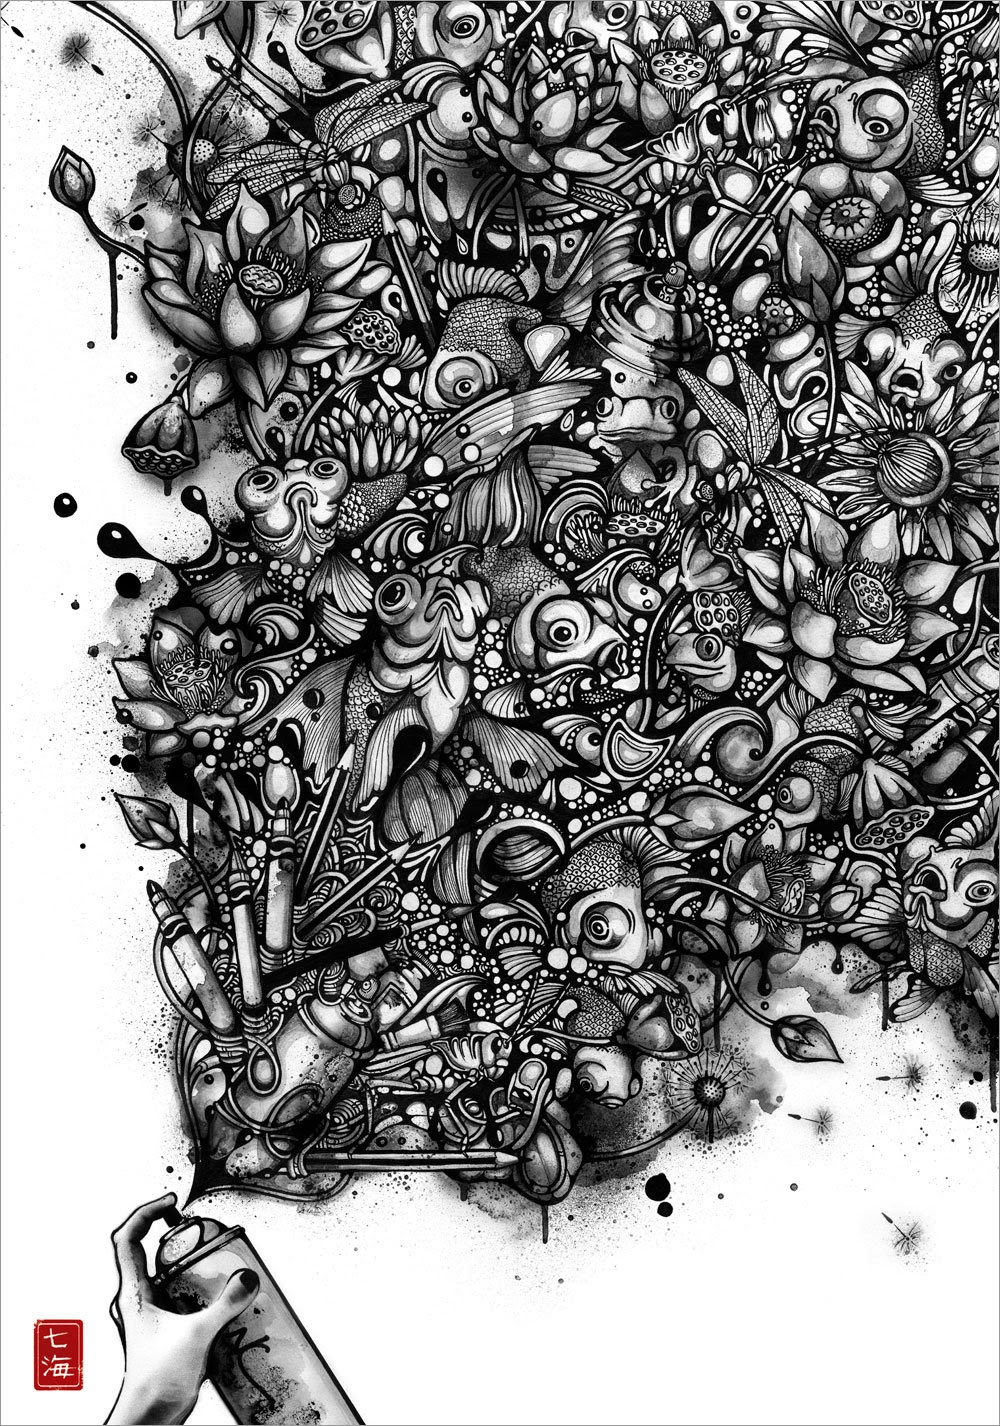 08-Ink-Pond-Nanami-Cowdroy-Splashes-of-Ink-Drawings-www-designstack-co